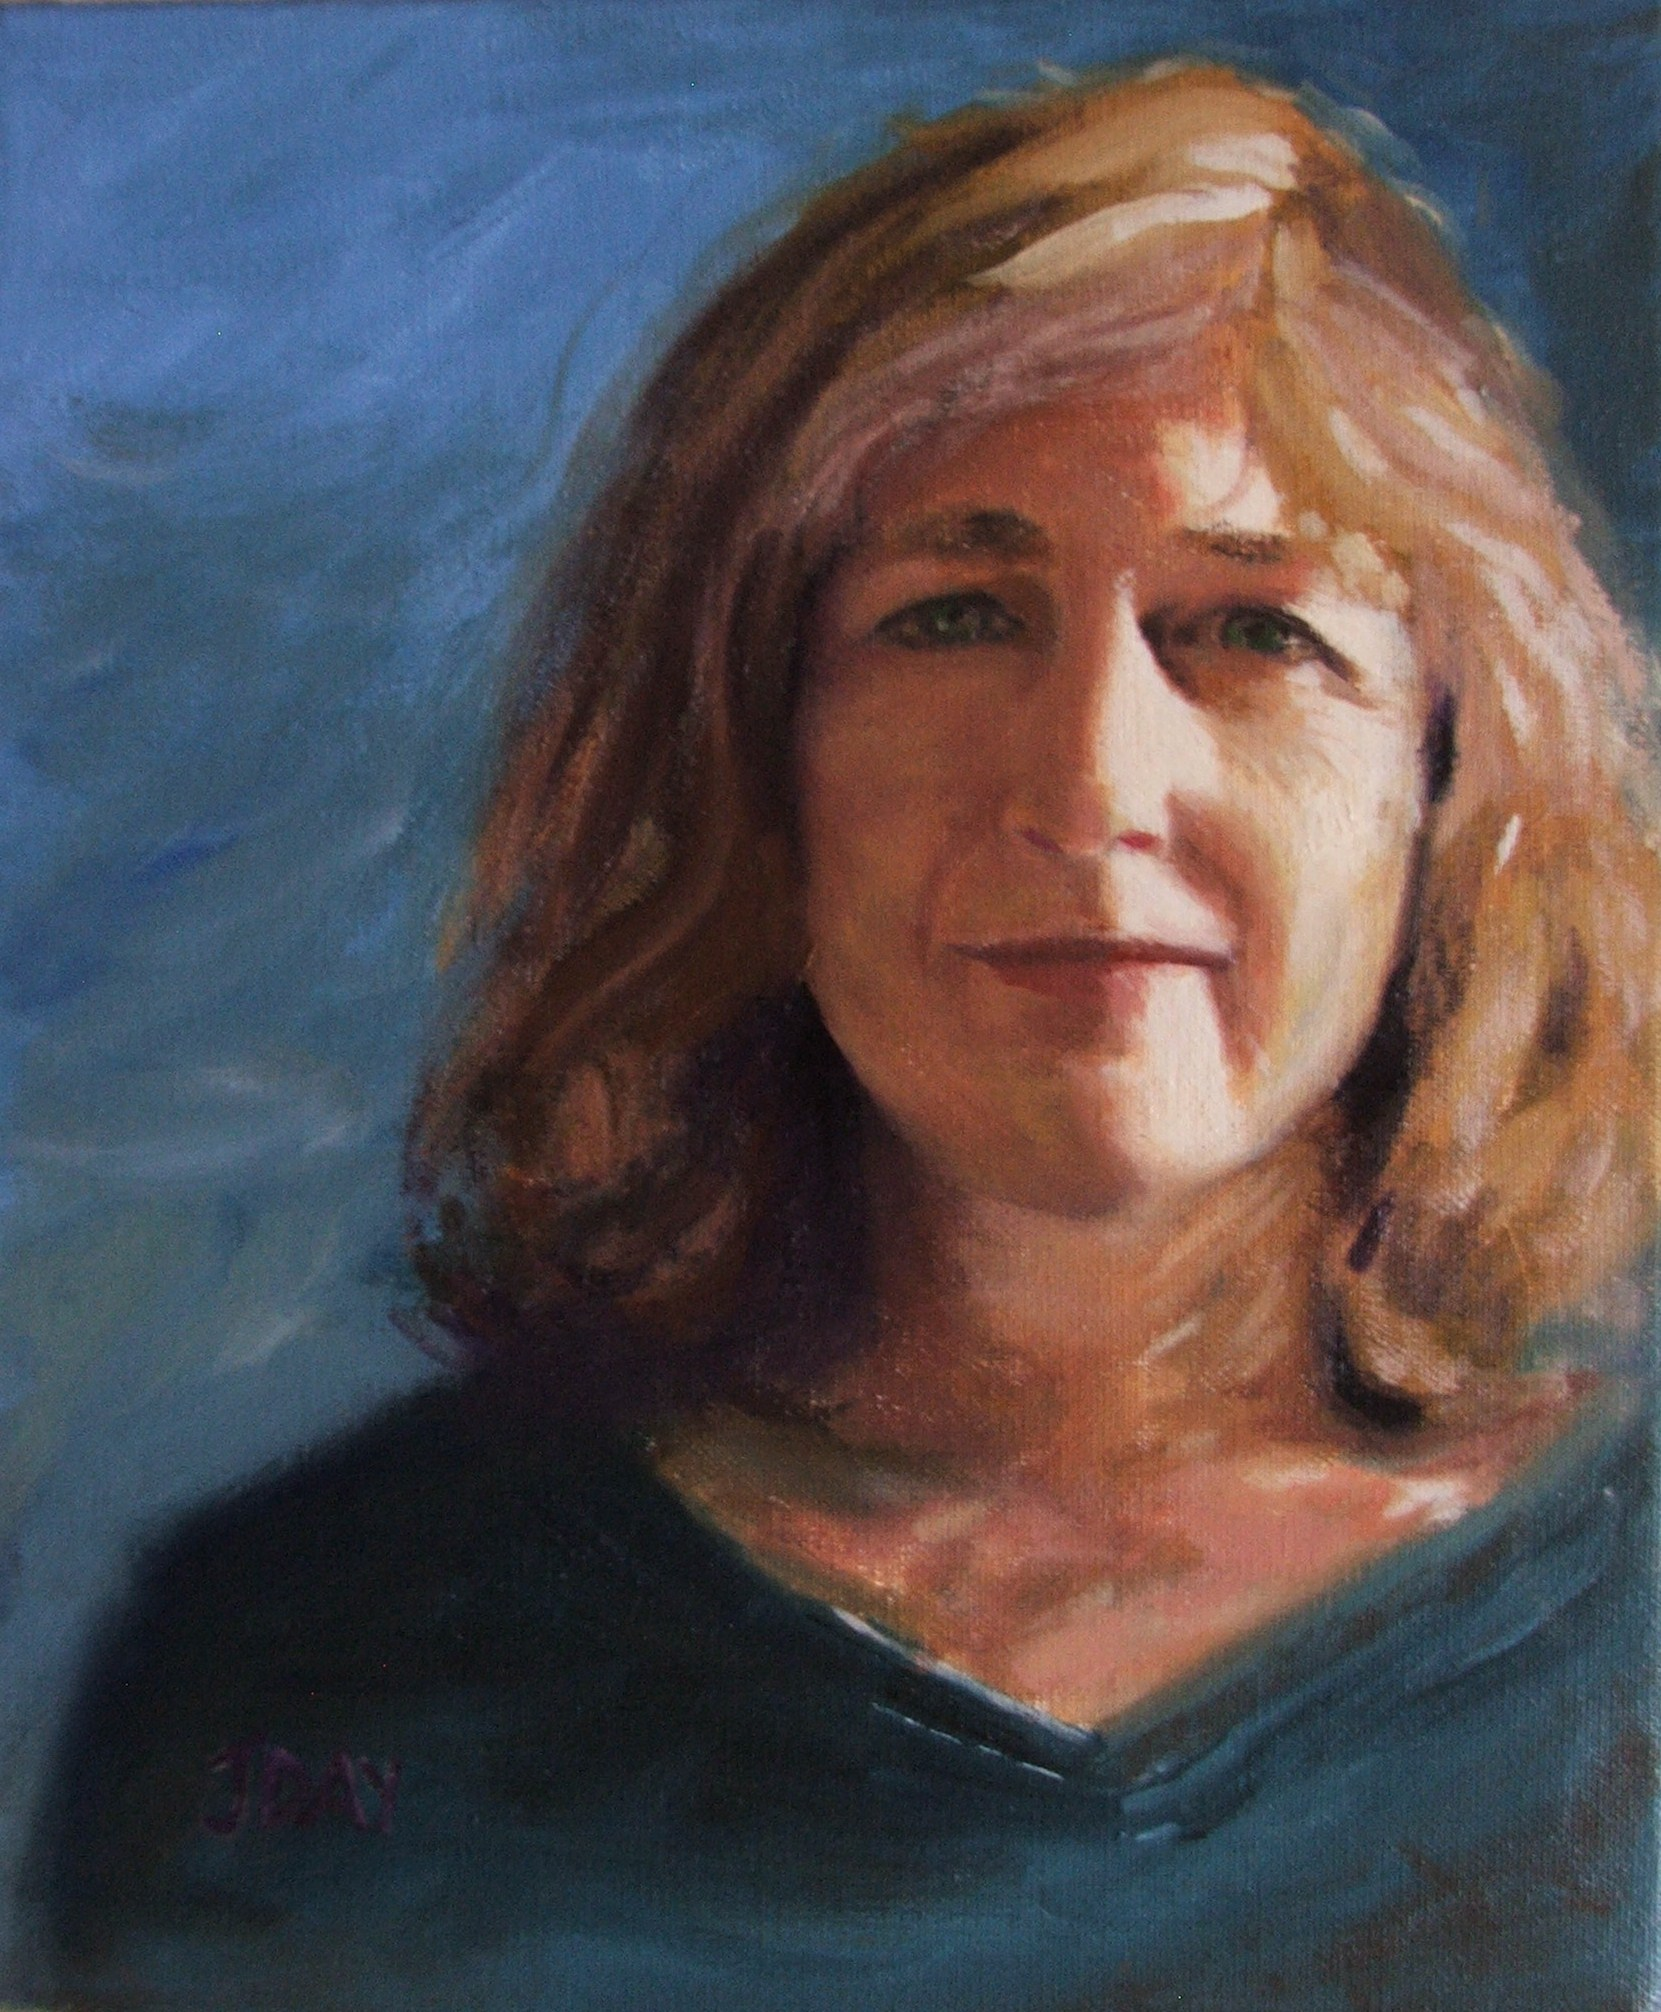 Wetcanvas portrait swap! Portrait painted with Genesis artist heat-set oil colors